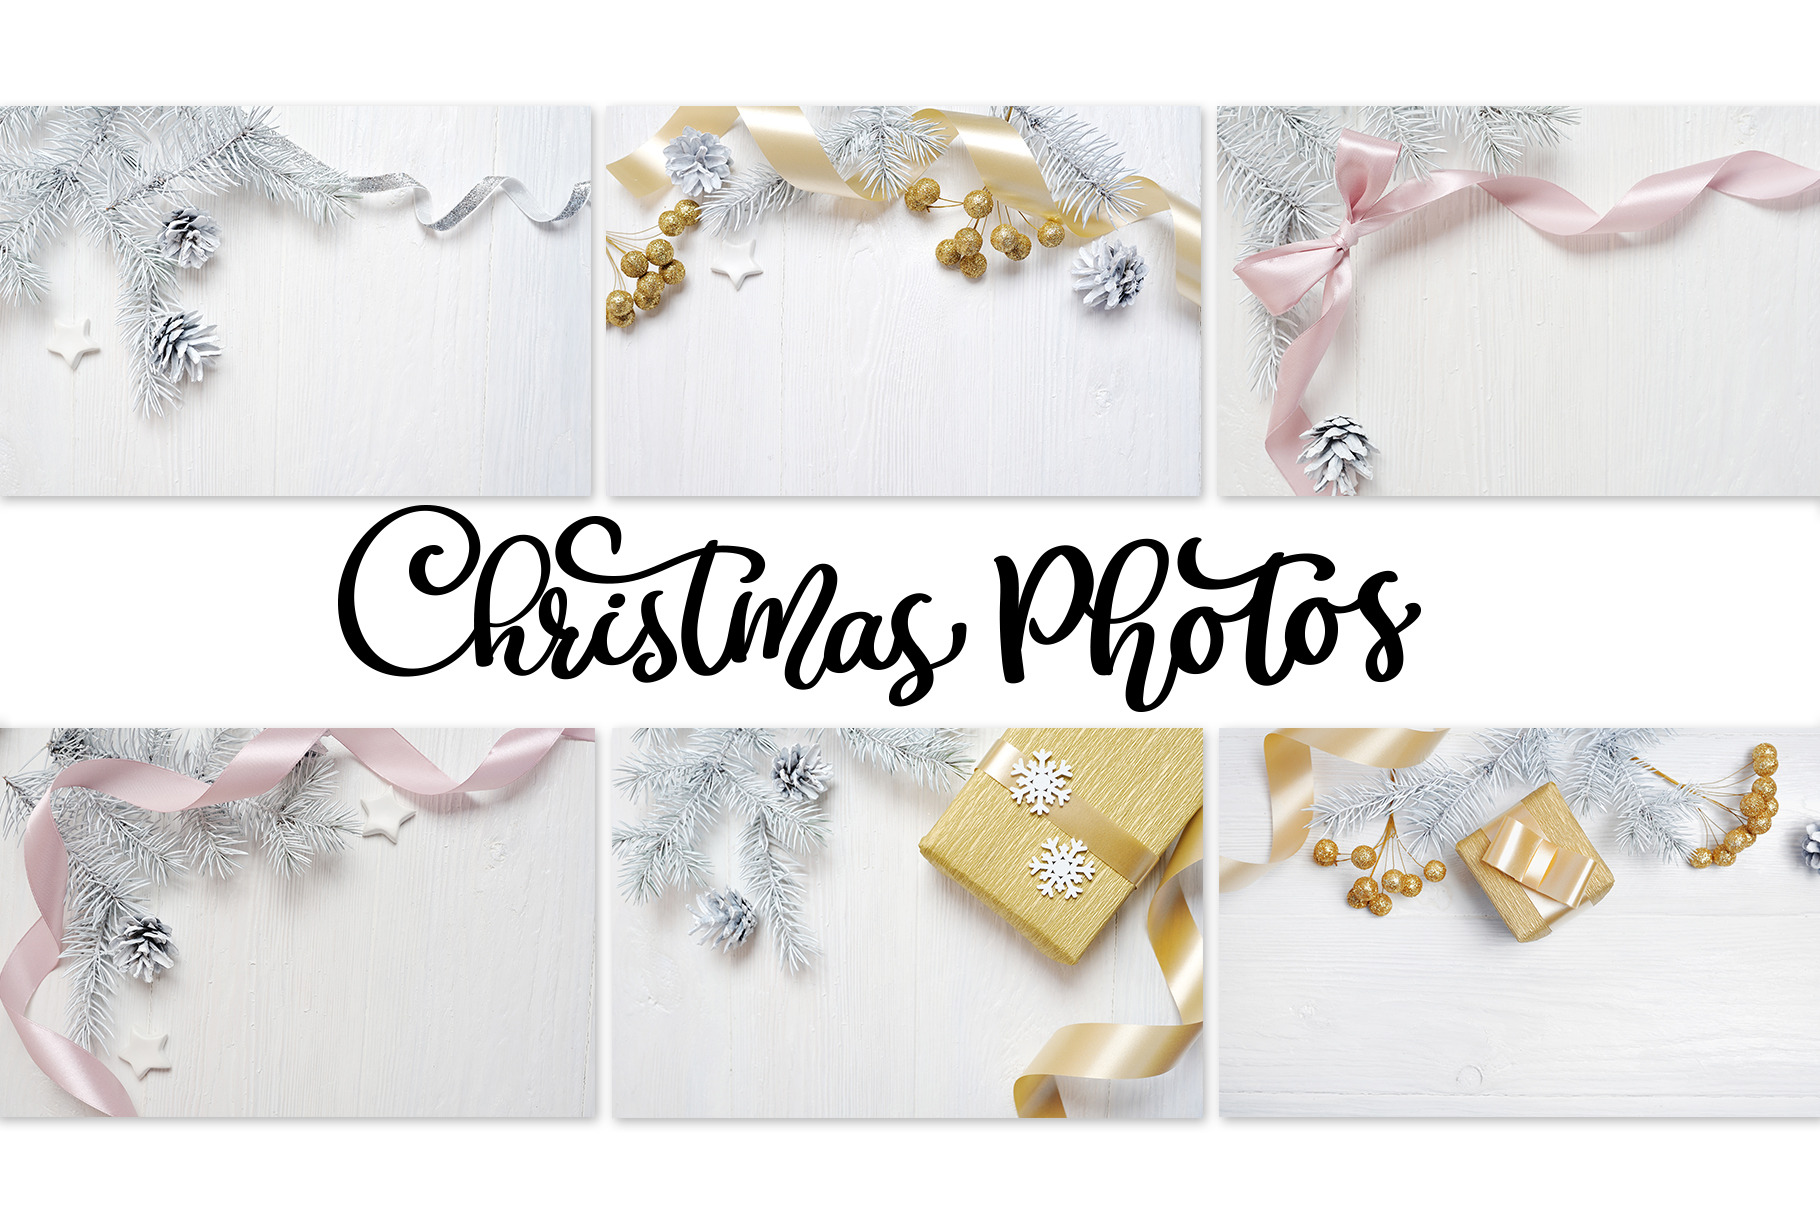 Christmas Photos Set Graphic Holidays By Happy Letters - Image 3